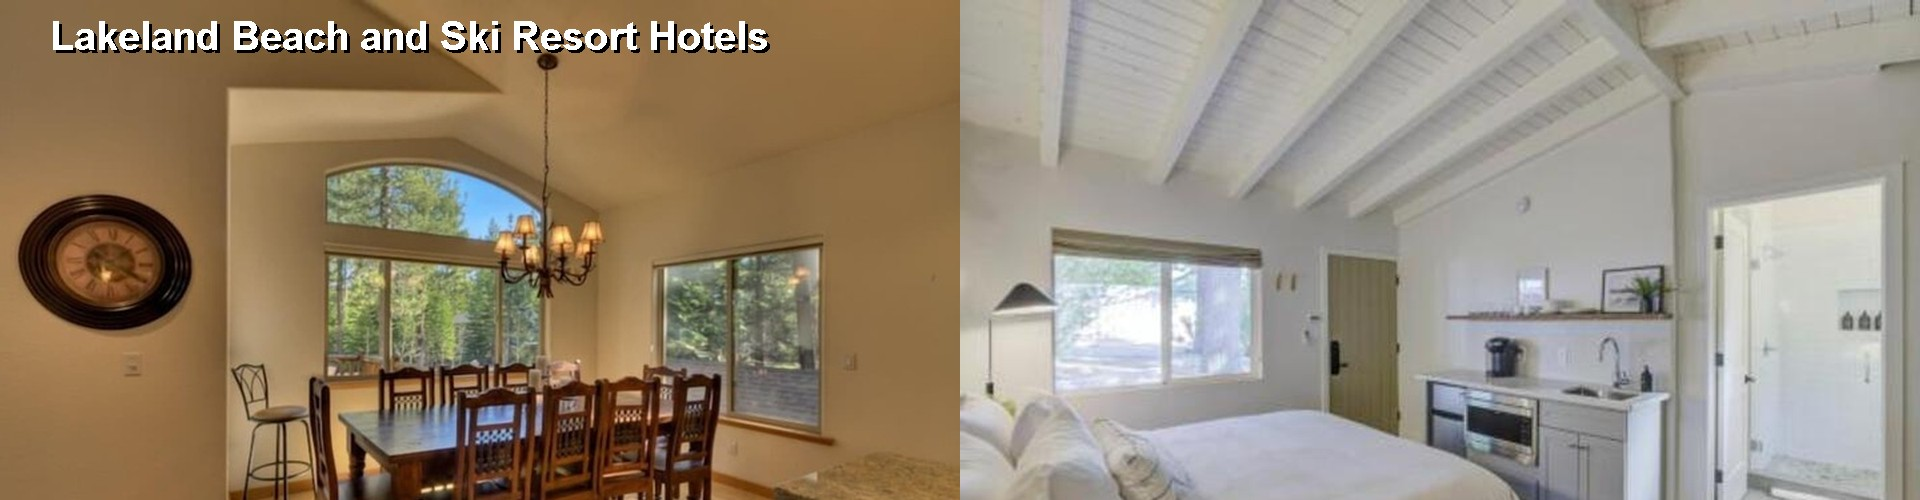 5 Best Hotels near Lakeland Beach and Ski Resort